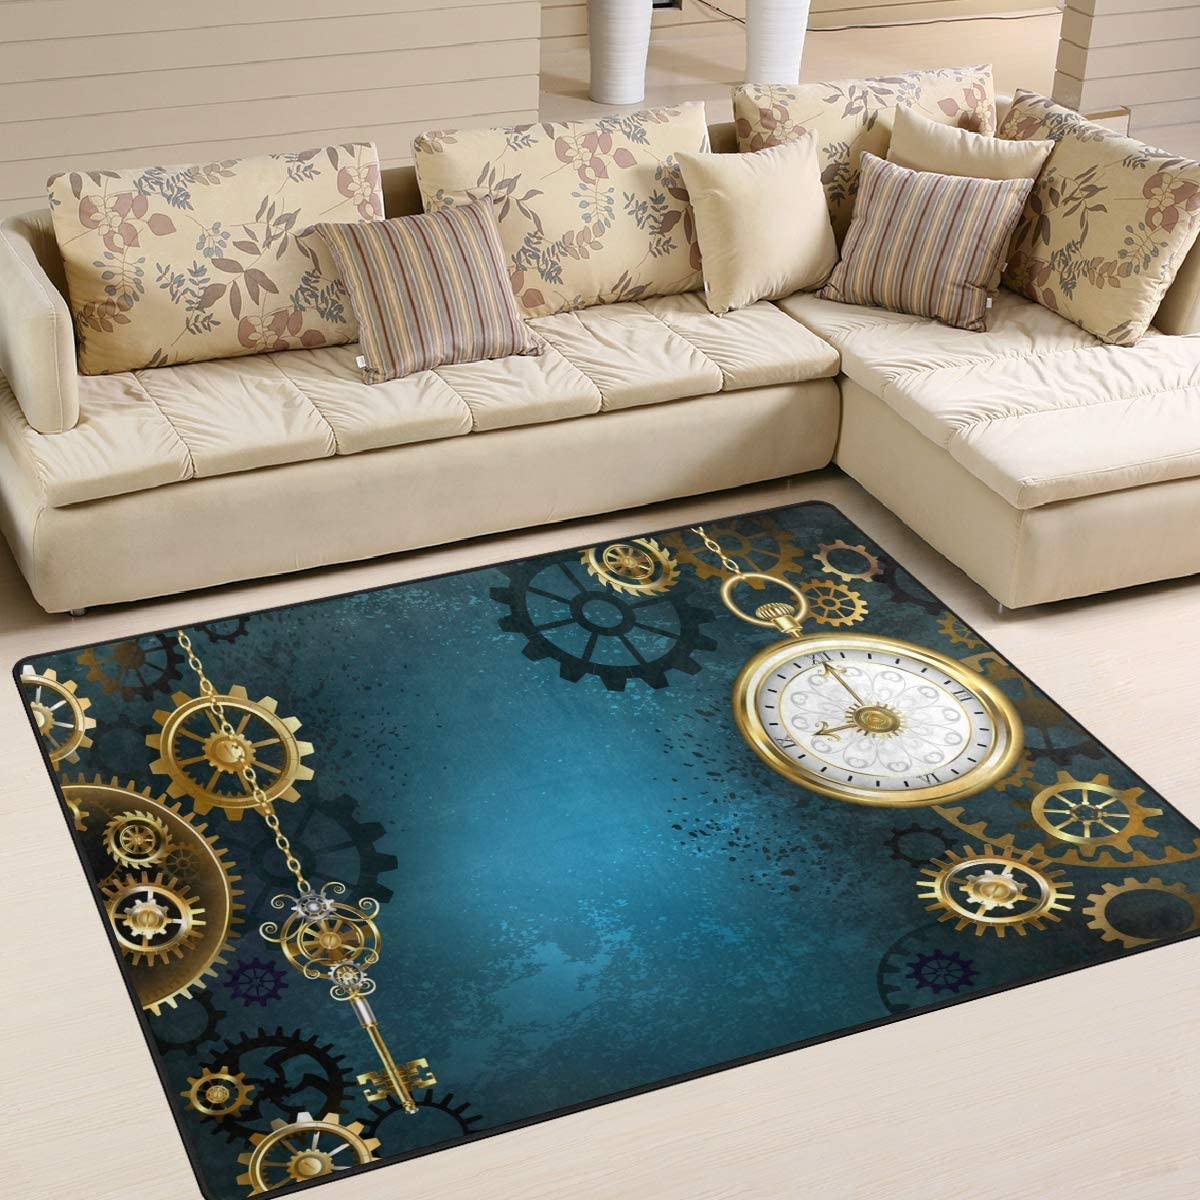 ALAZA Retro Steampunk Gold Gears Clock Area Rug Rugs for Living Room Bedroom 7 x 5